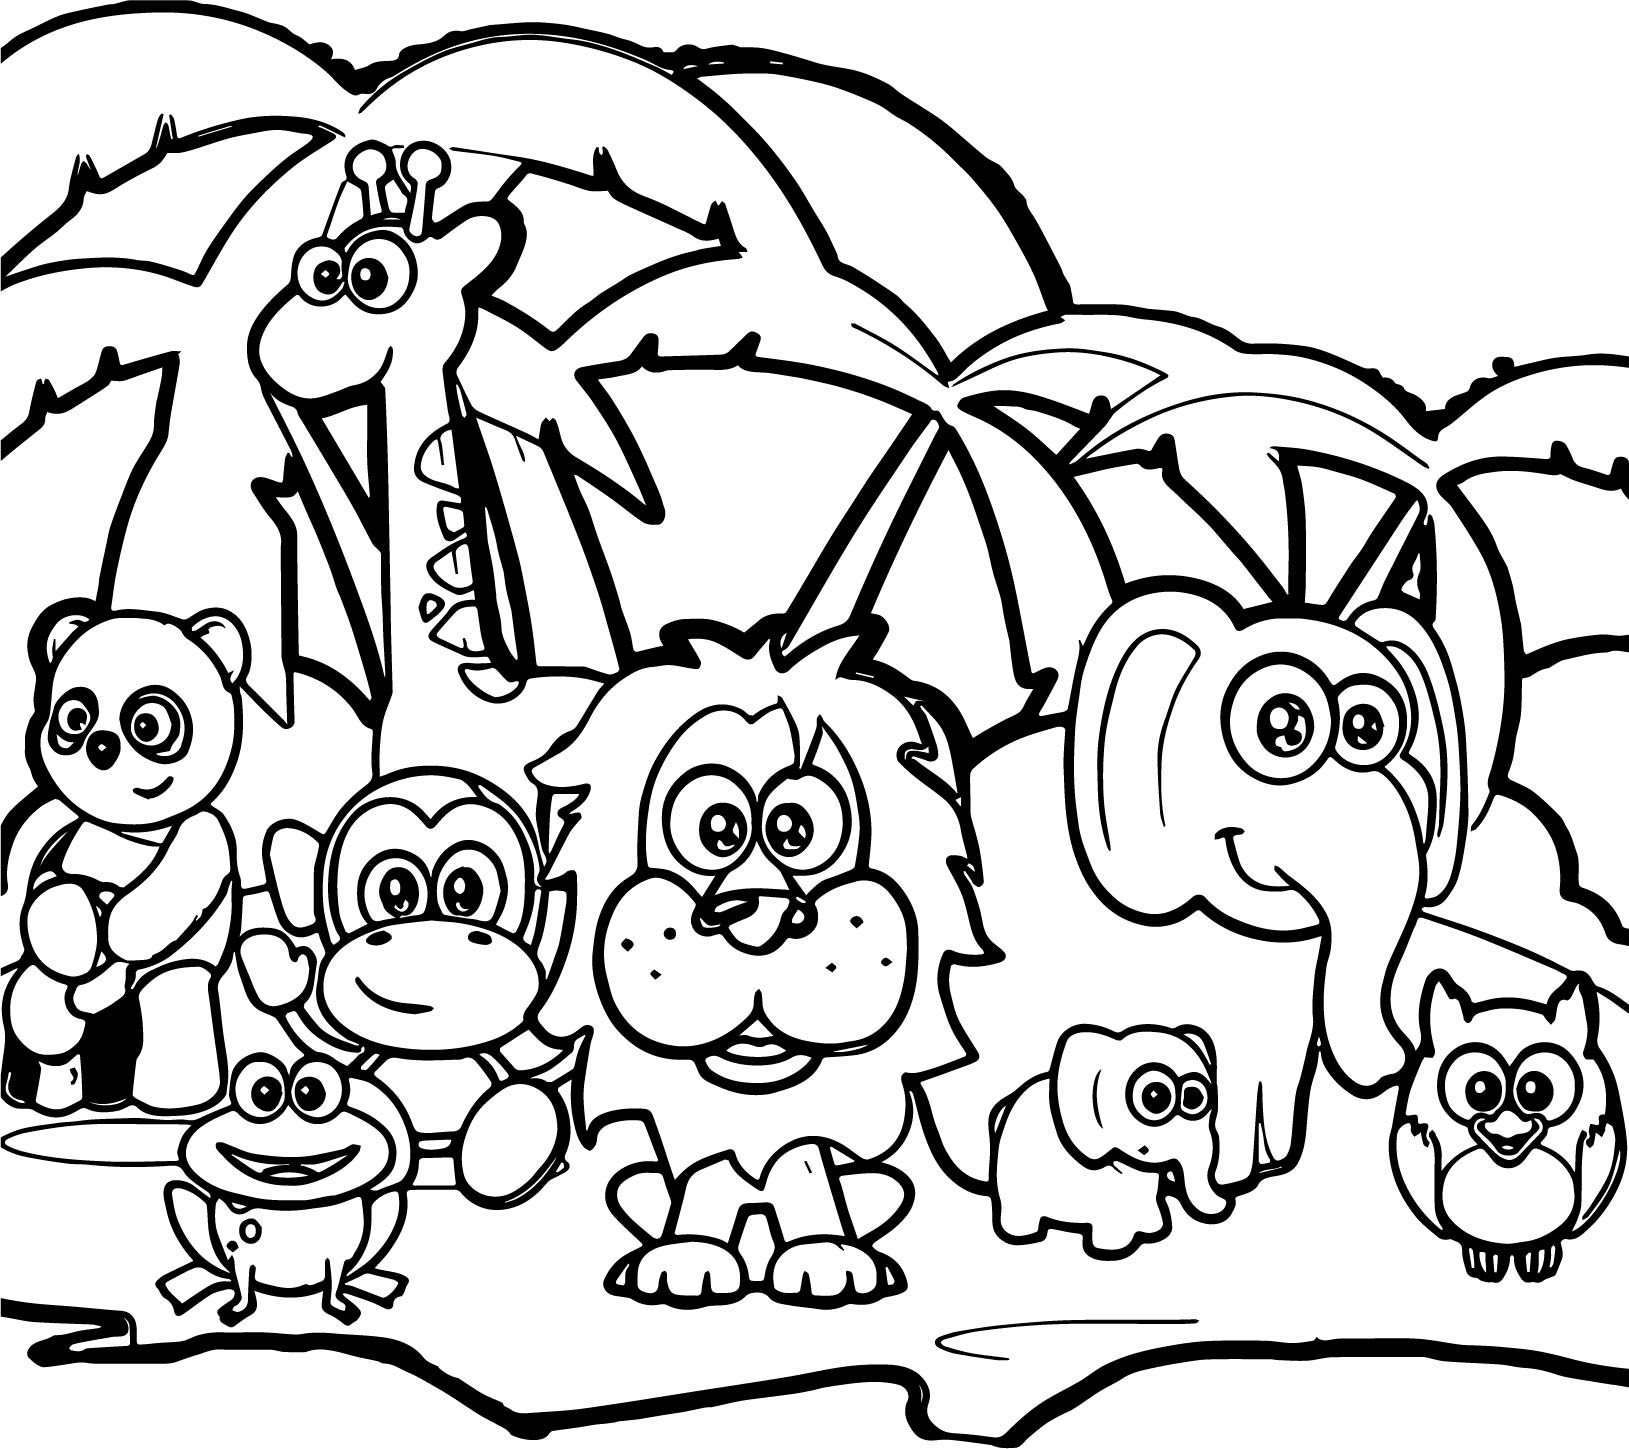 89 Abc Animal Zebra Lion Coloring Page